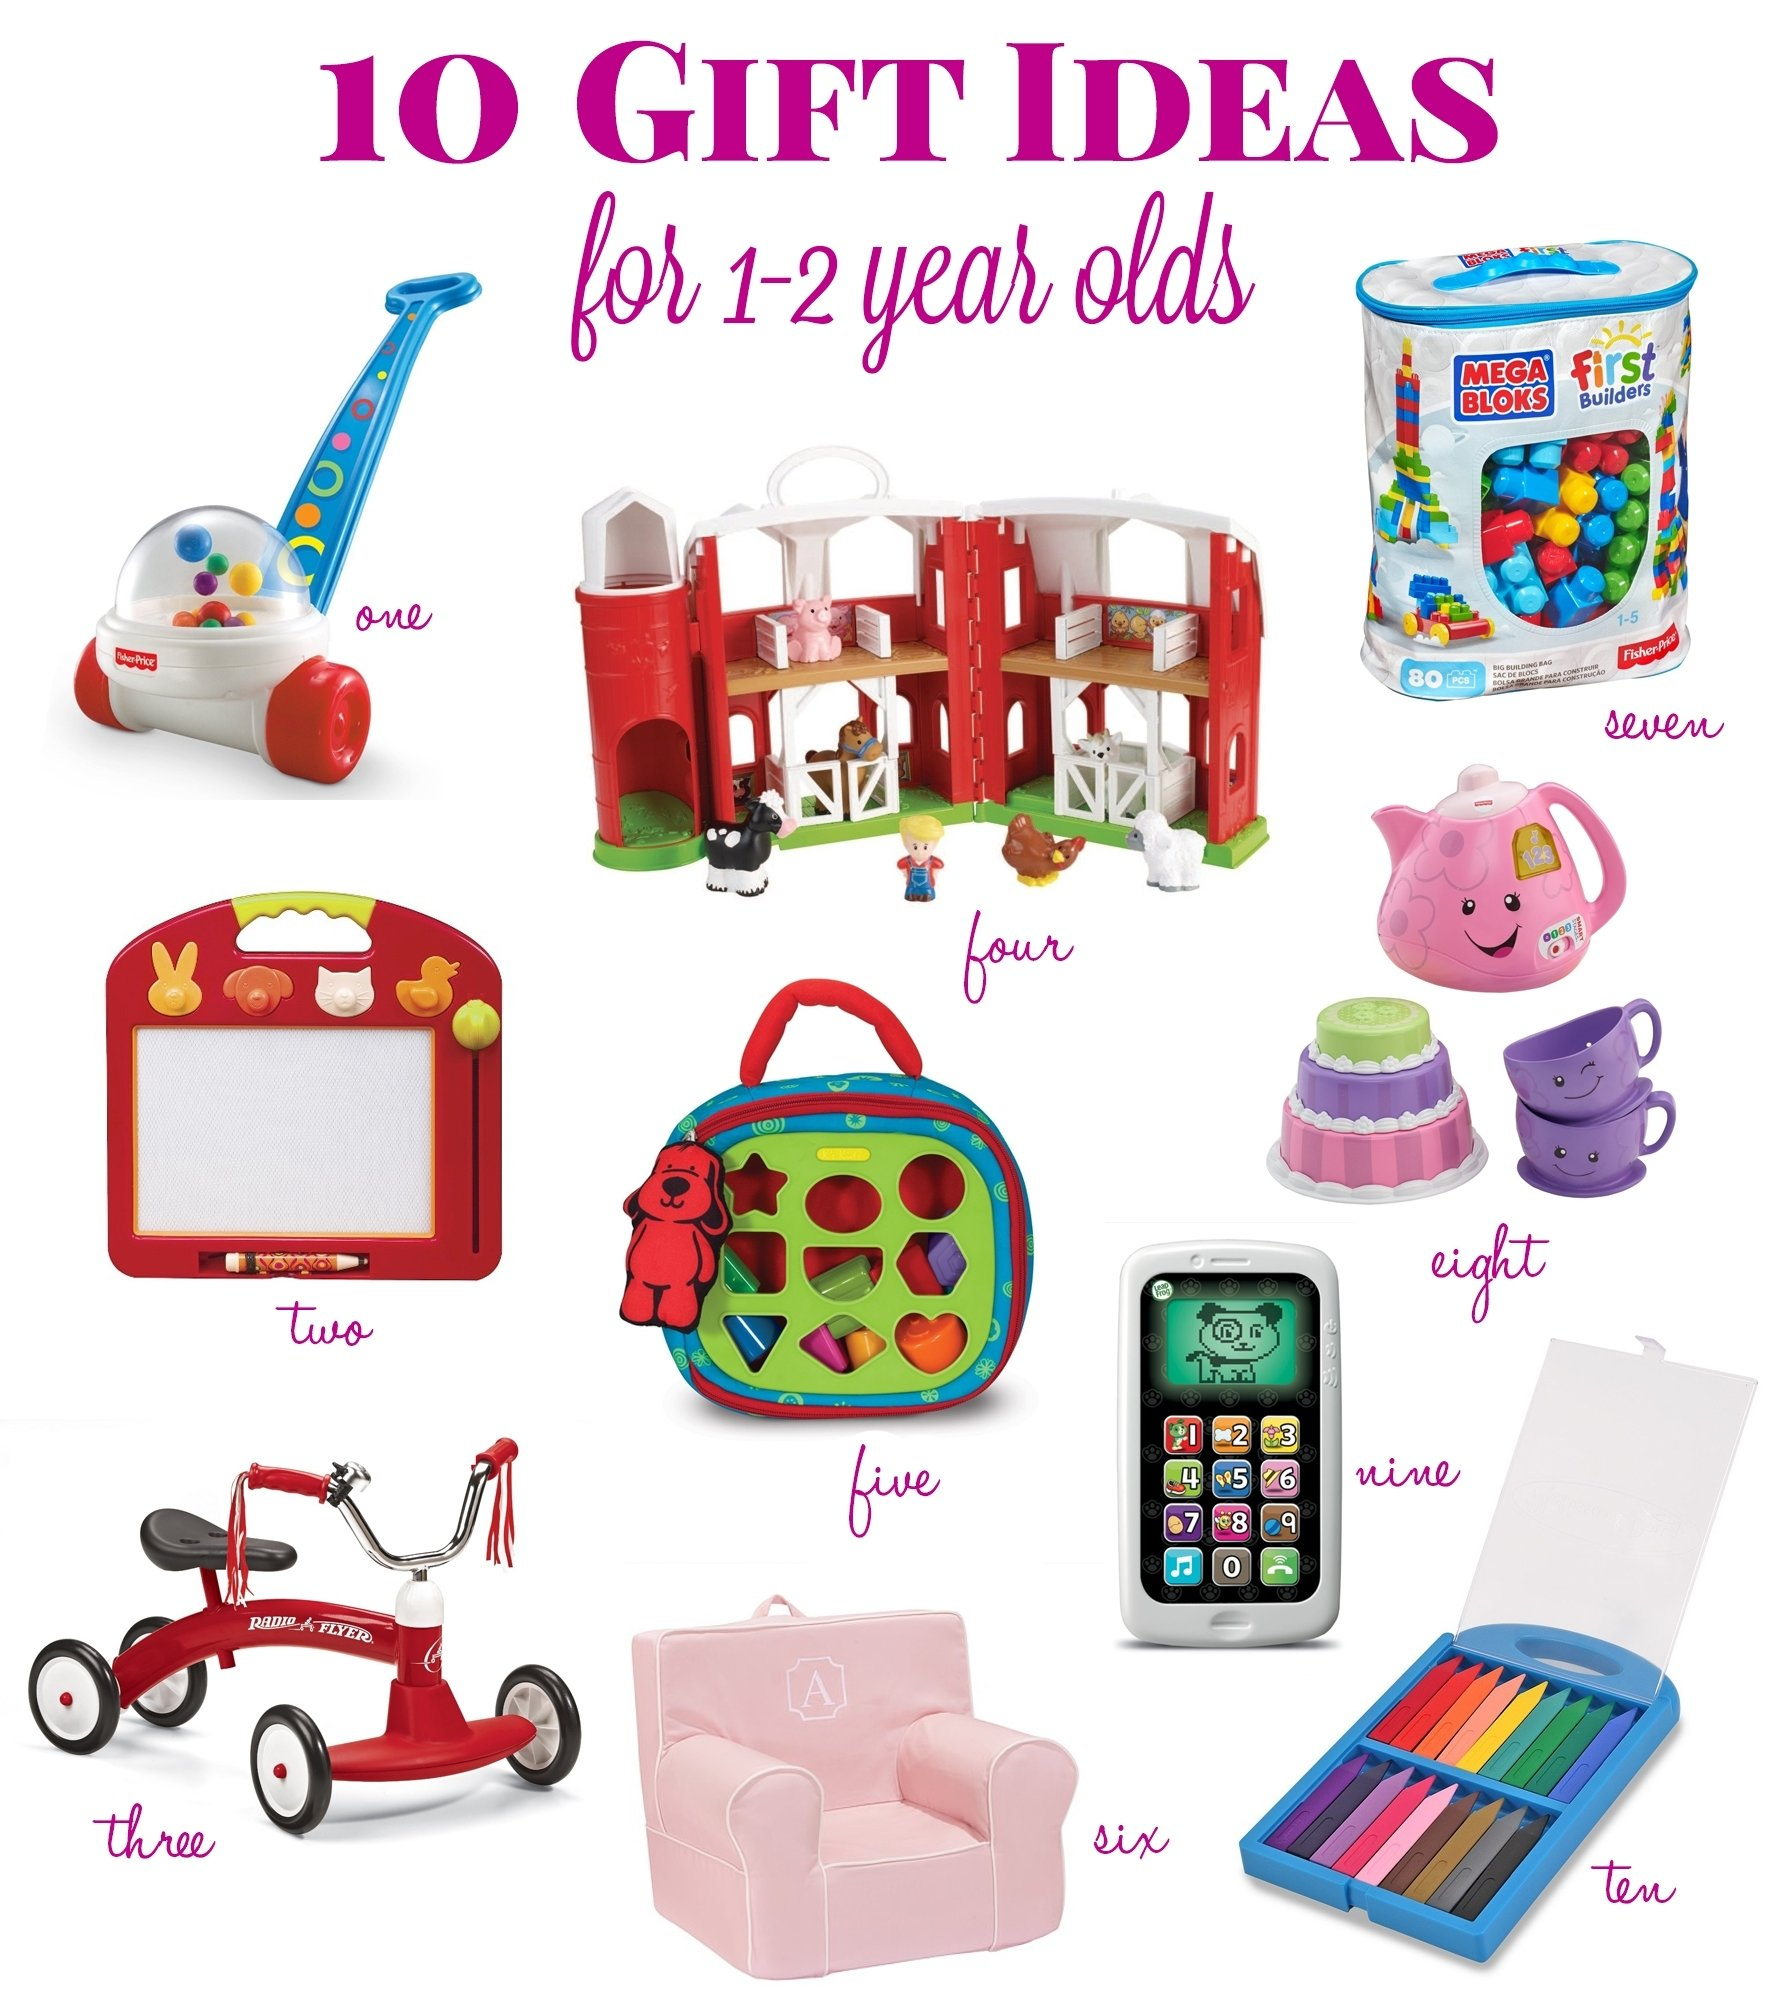 10 Gorgeous 2 Year Old Birthday Gift Ideas gift ideas for a 1 year old lifes tidbits 2